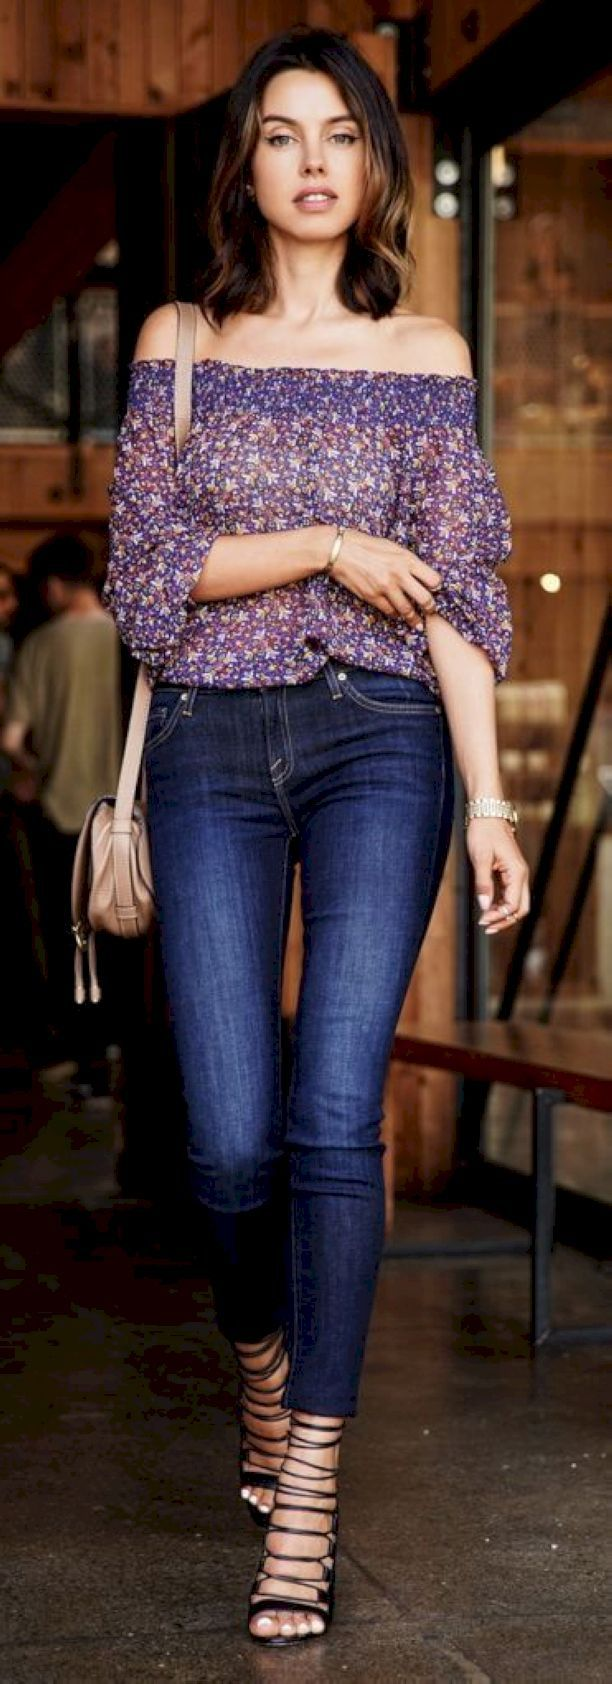 Nice 55 Adorable Date Night Style for Romantic Moment from https://www.fashionetter.com/2017/05/19/adorable-date-night-style-romantic-moment/